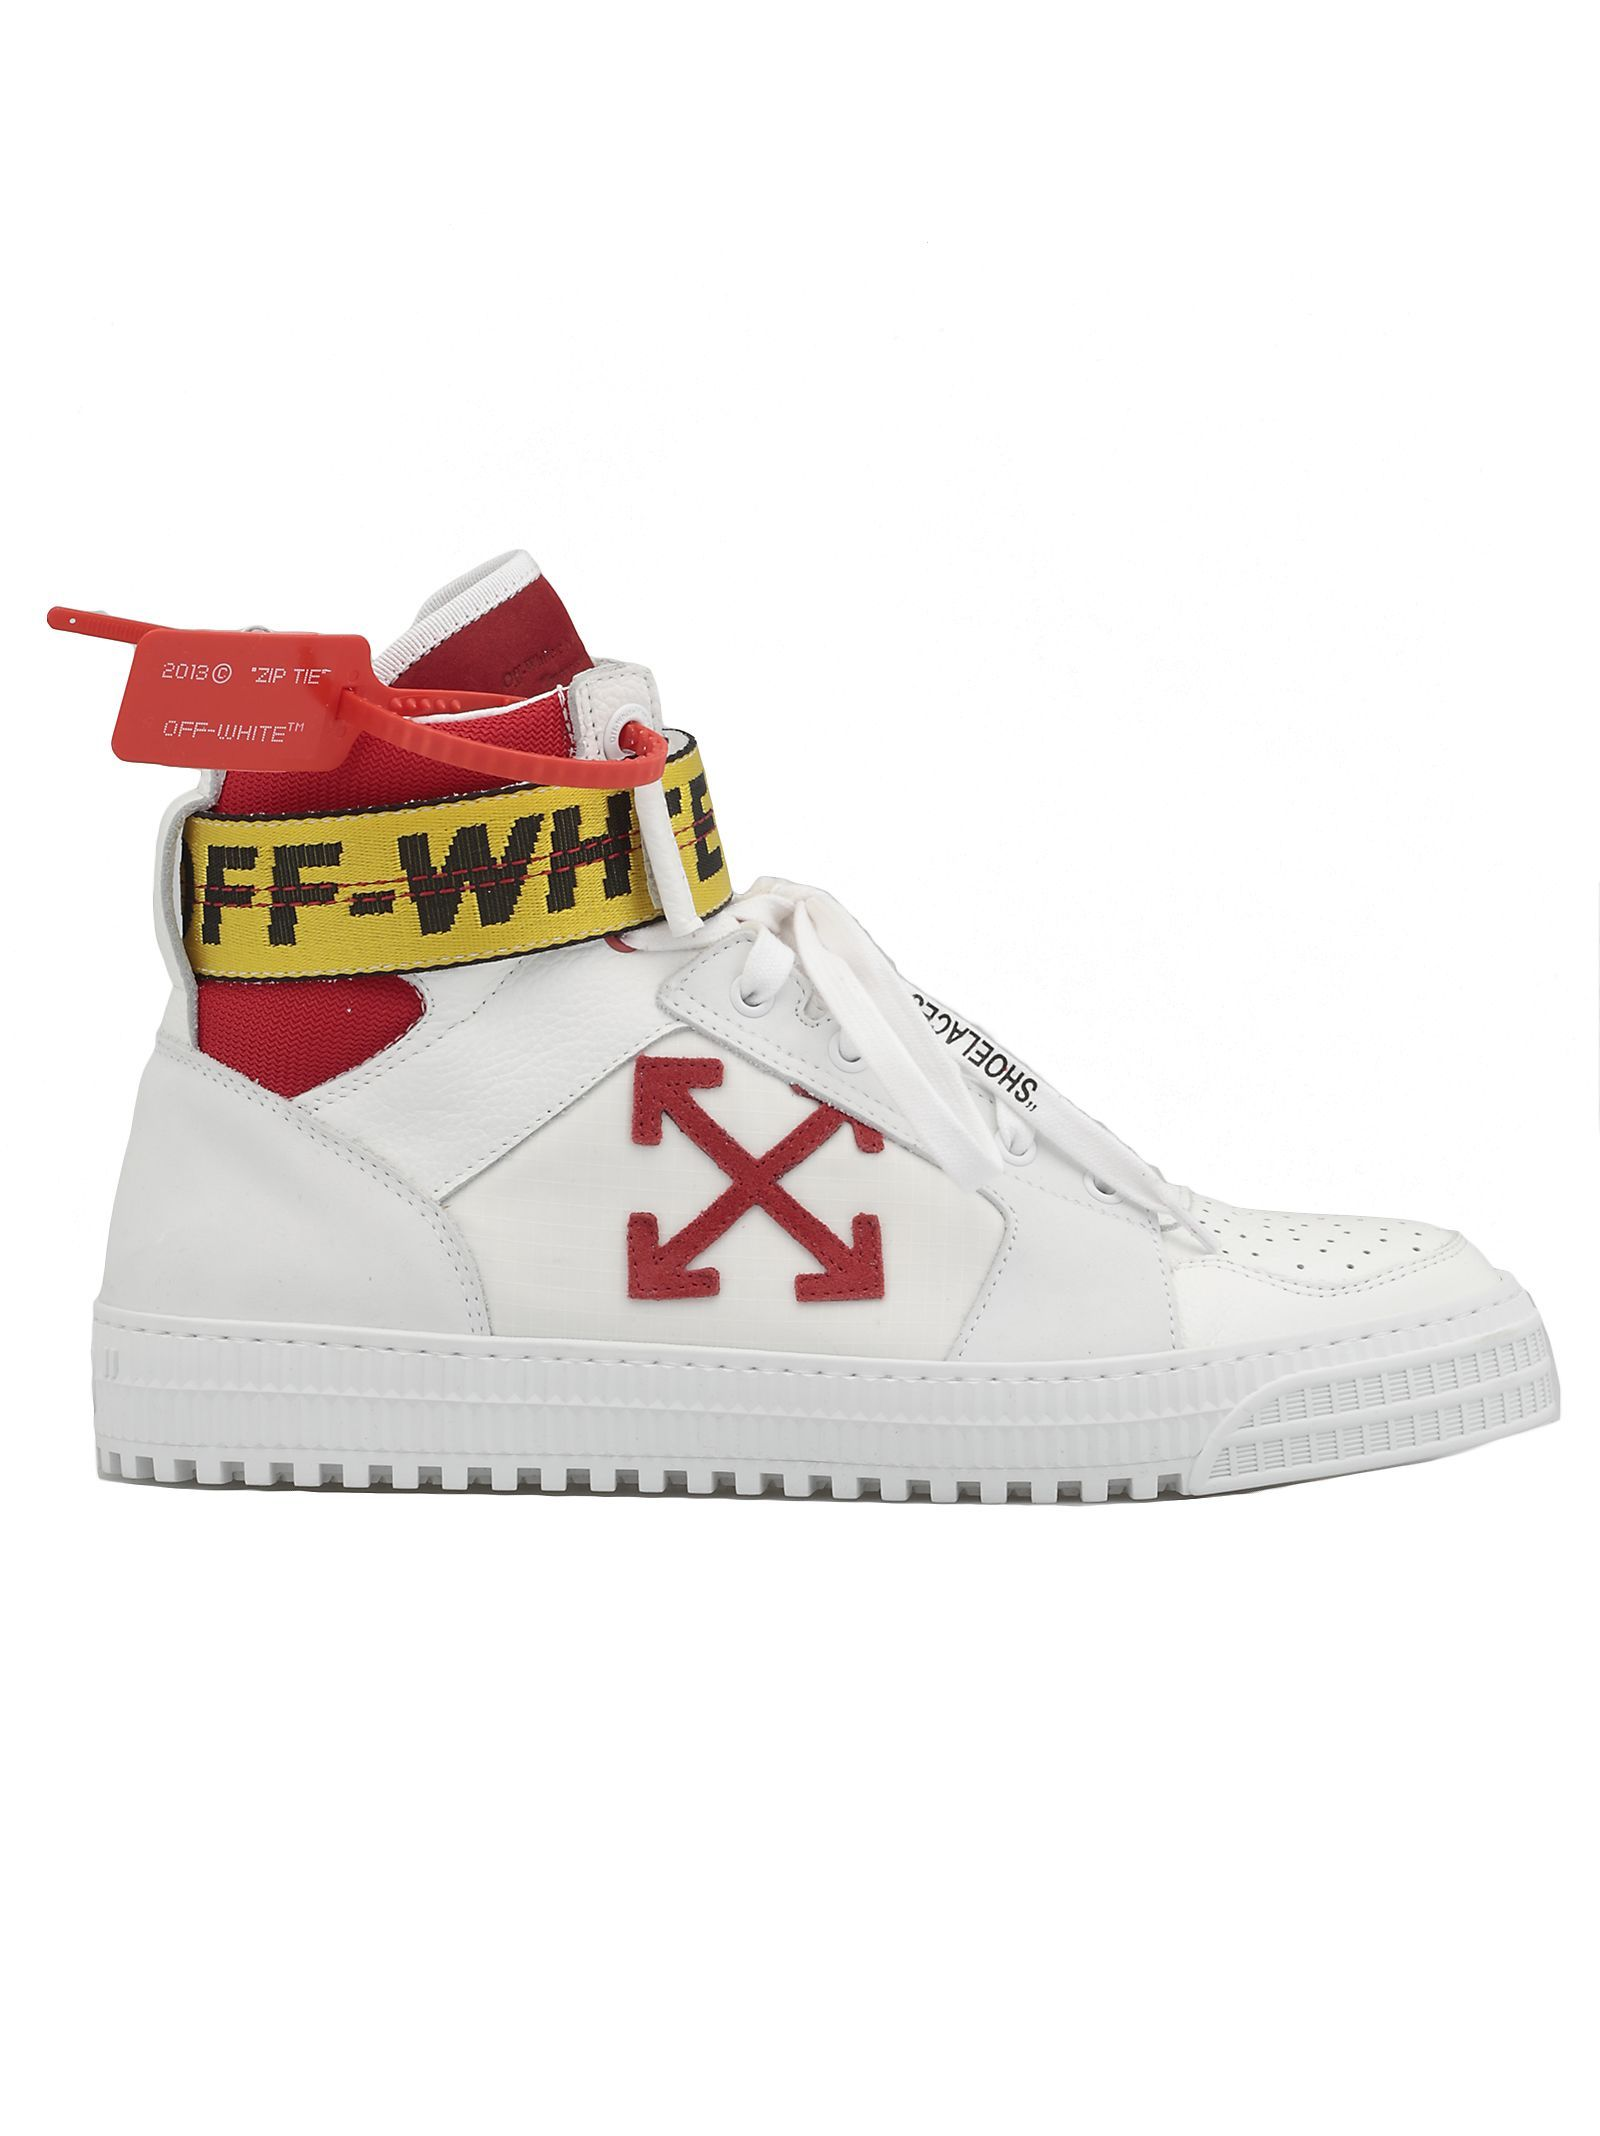 Off White Shoes Industrial Full-grain Leather, Suede And Ripstop High-top Sneakers ...